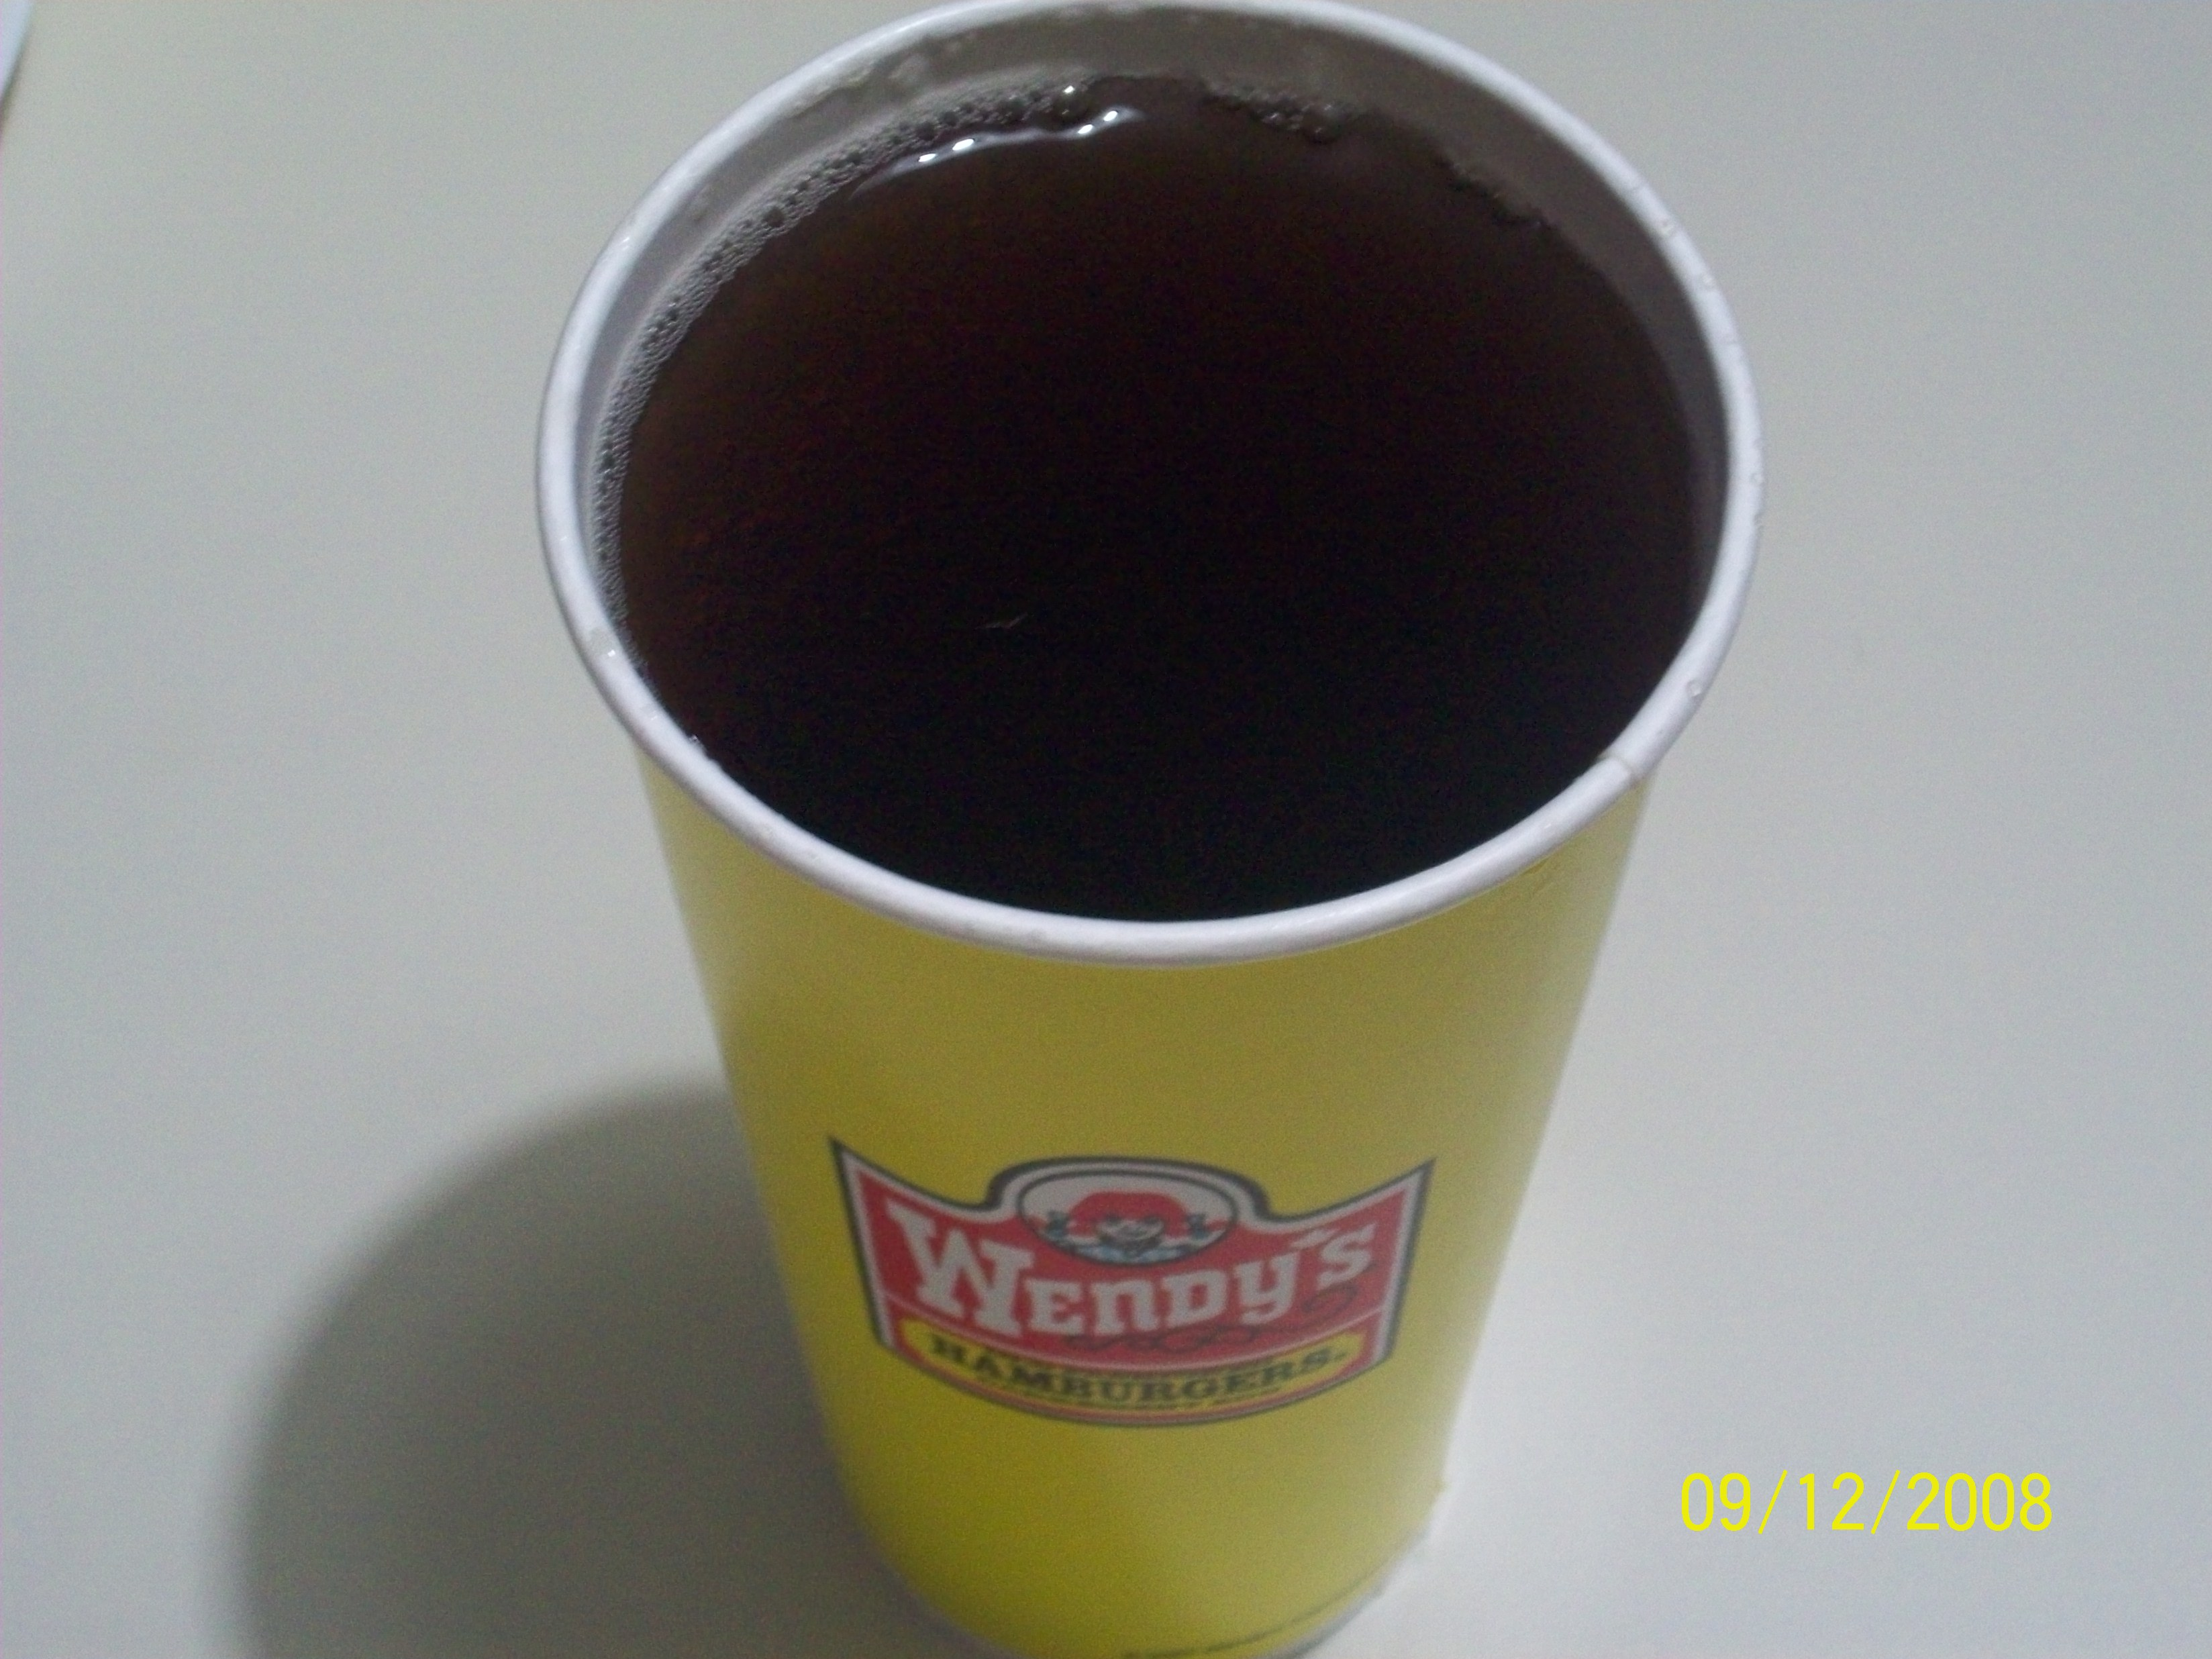 https://foodloader.net/cutie_2008-12-09_Wendys_Iced_Tea.jpg